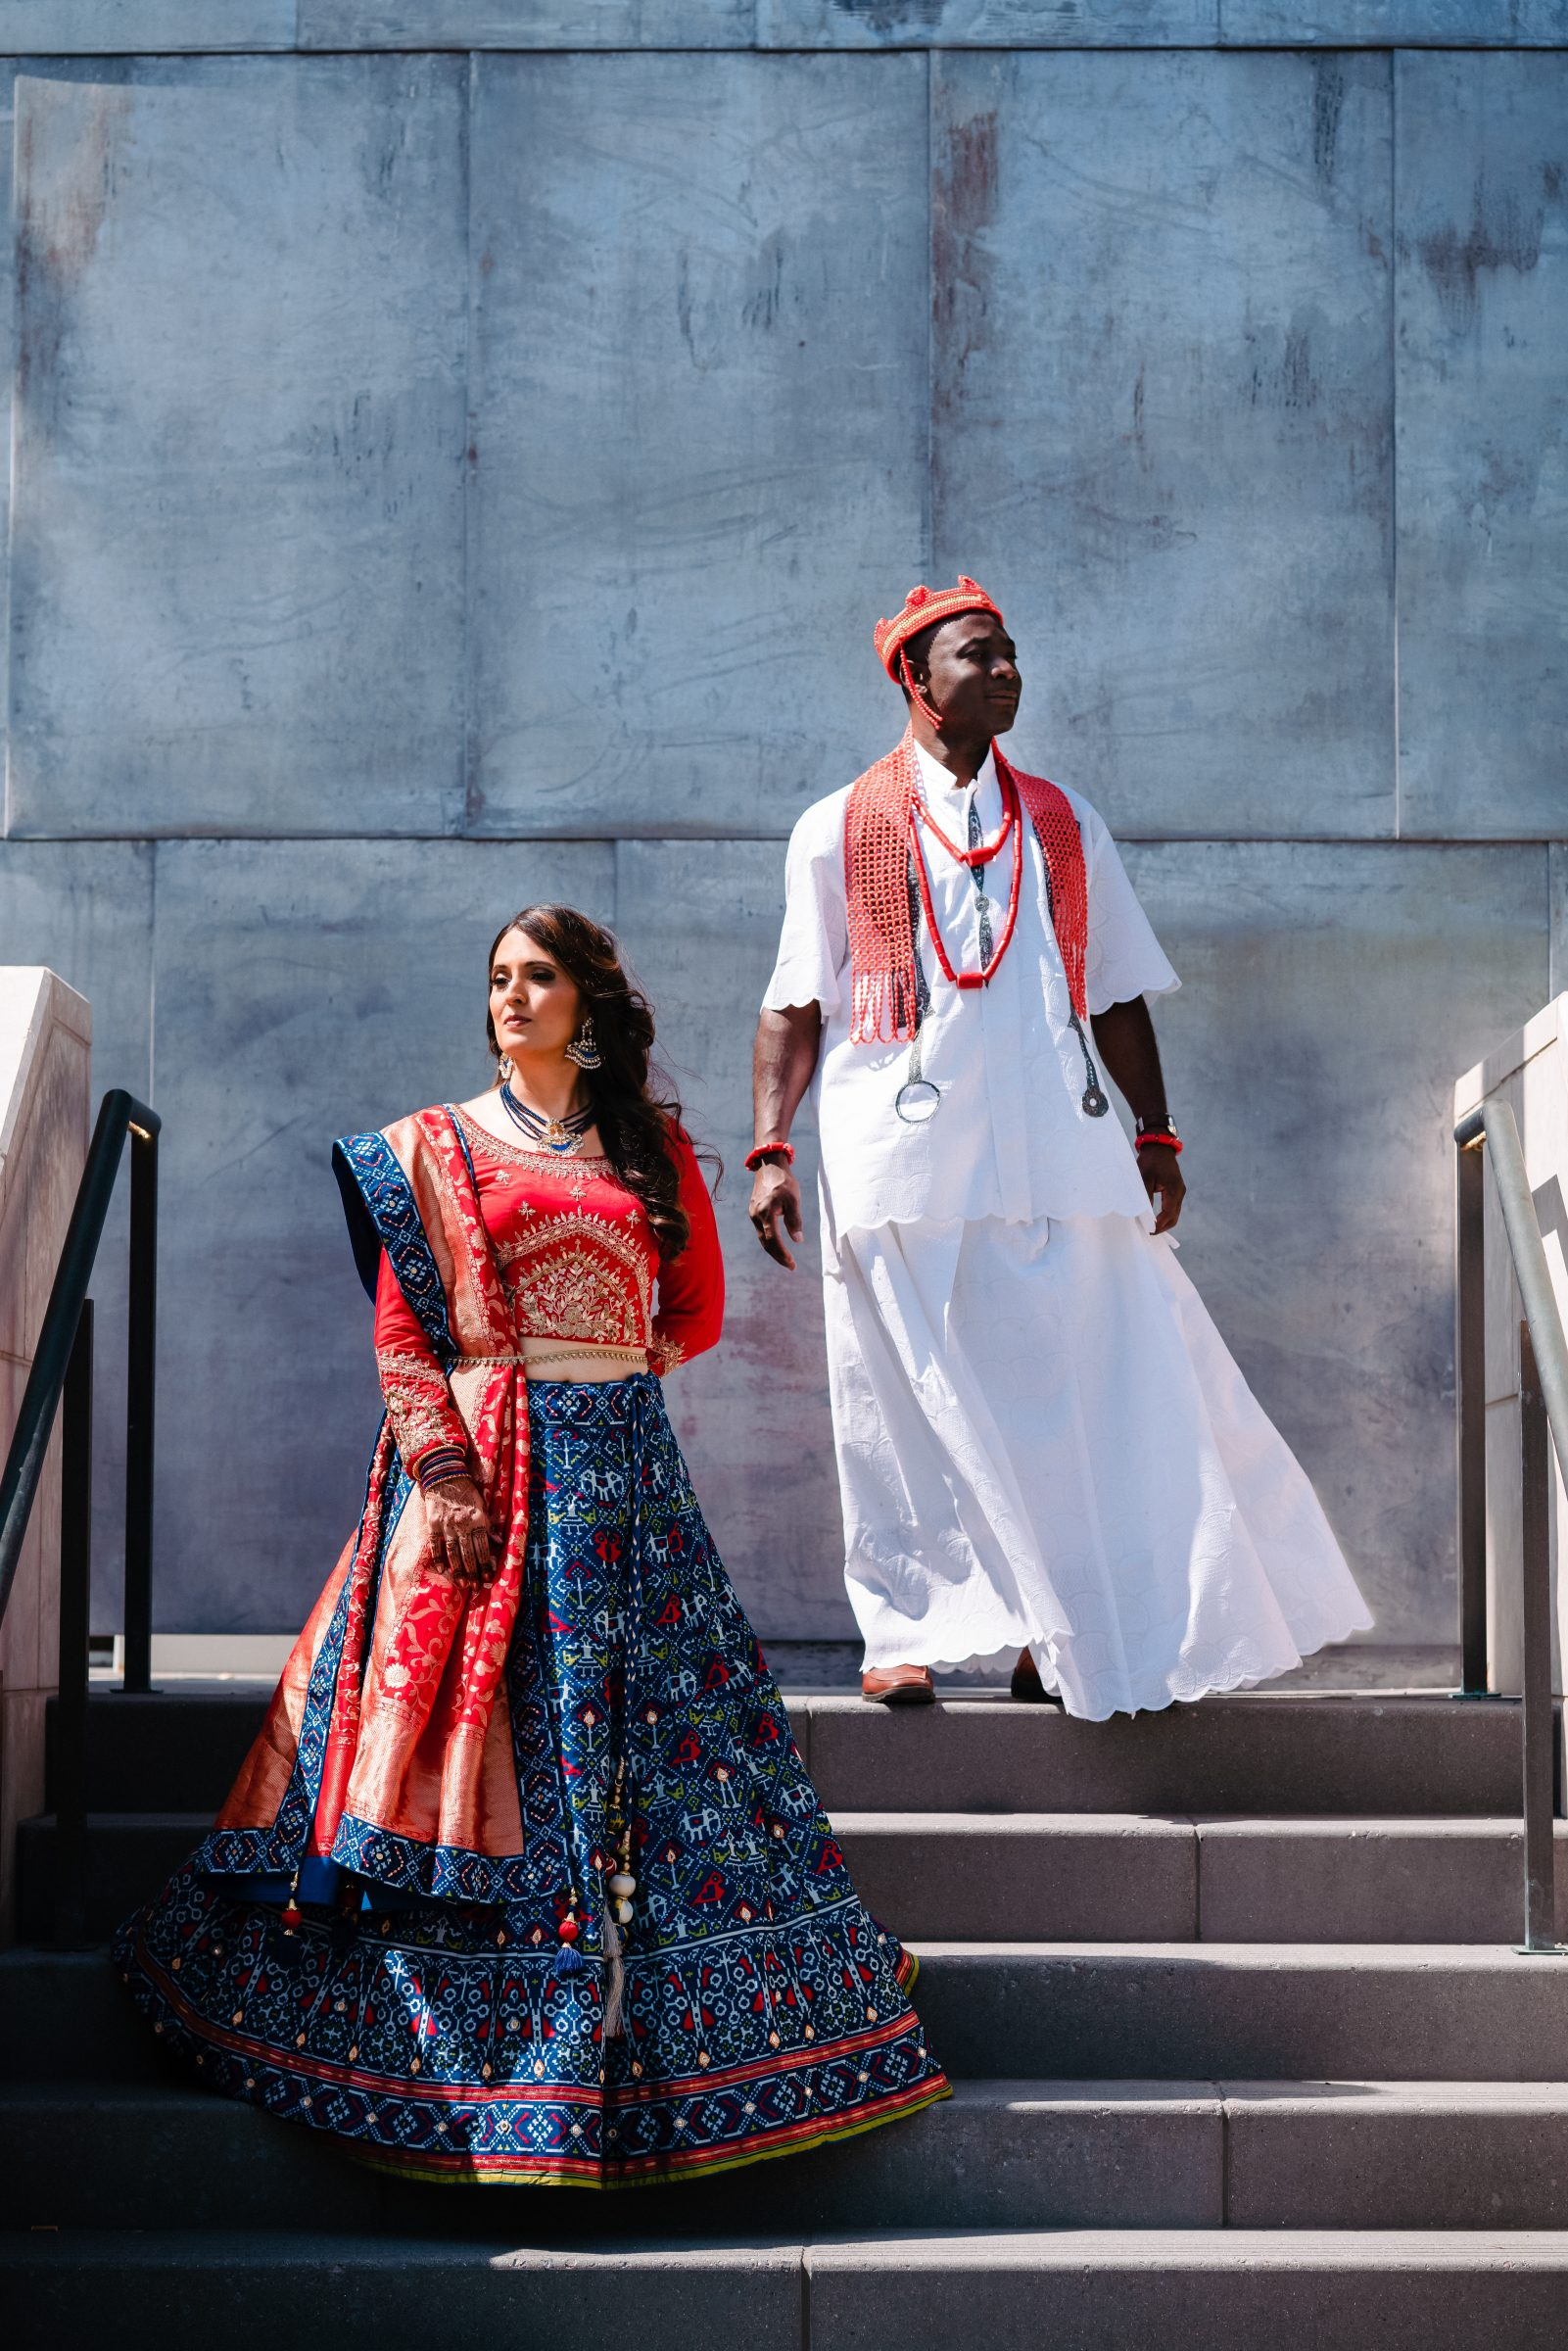 Nigerian and Indian multicultural wedding attire